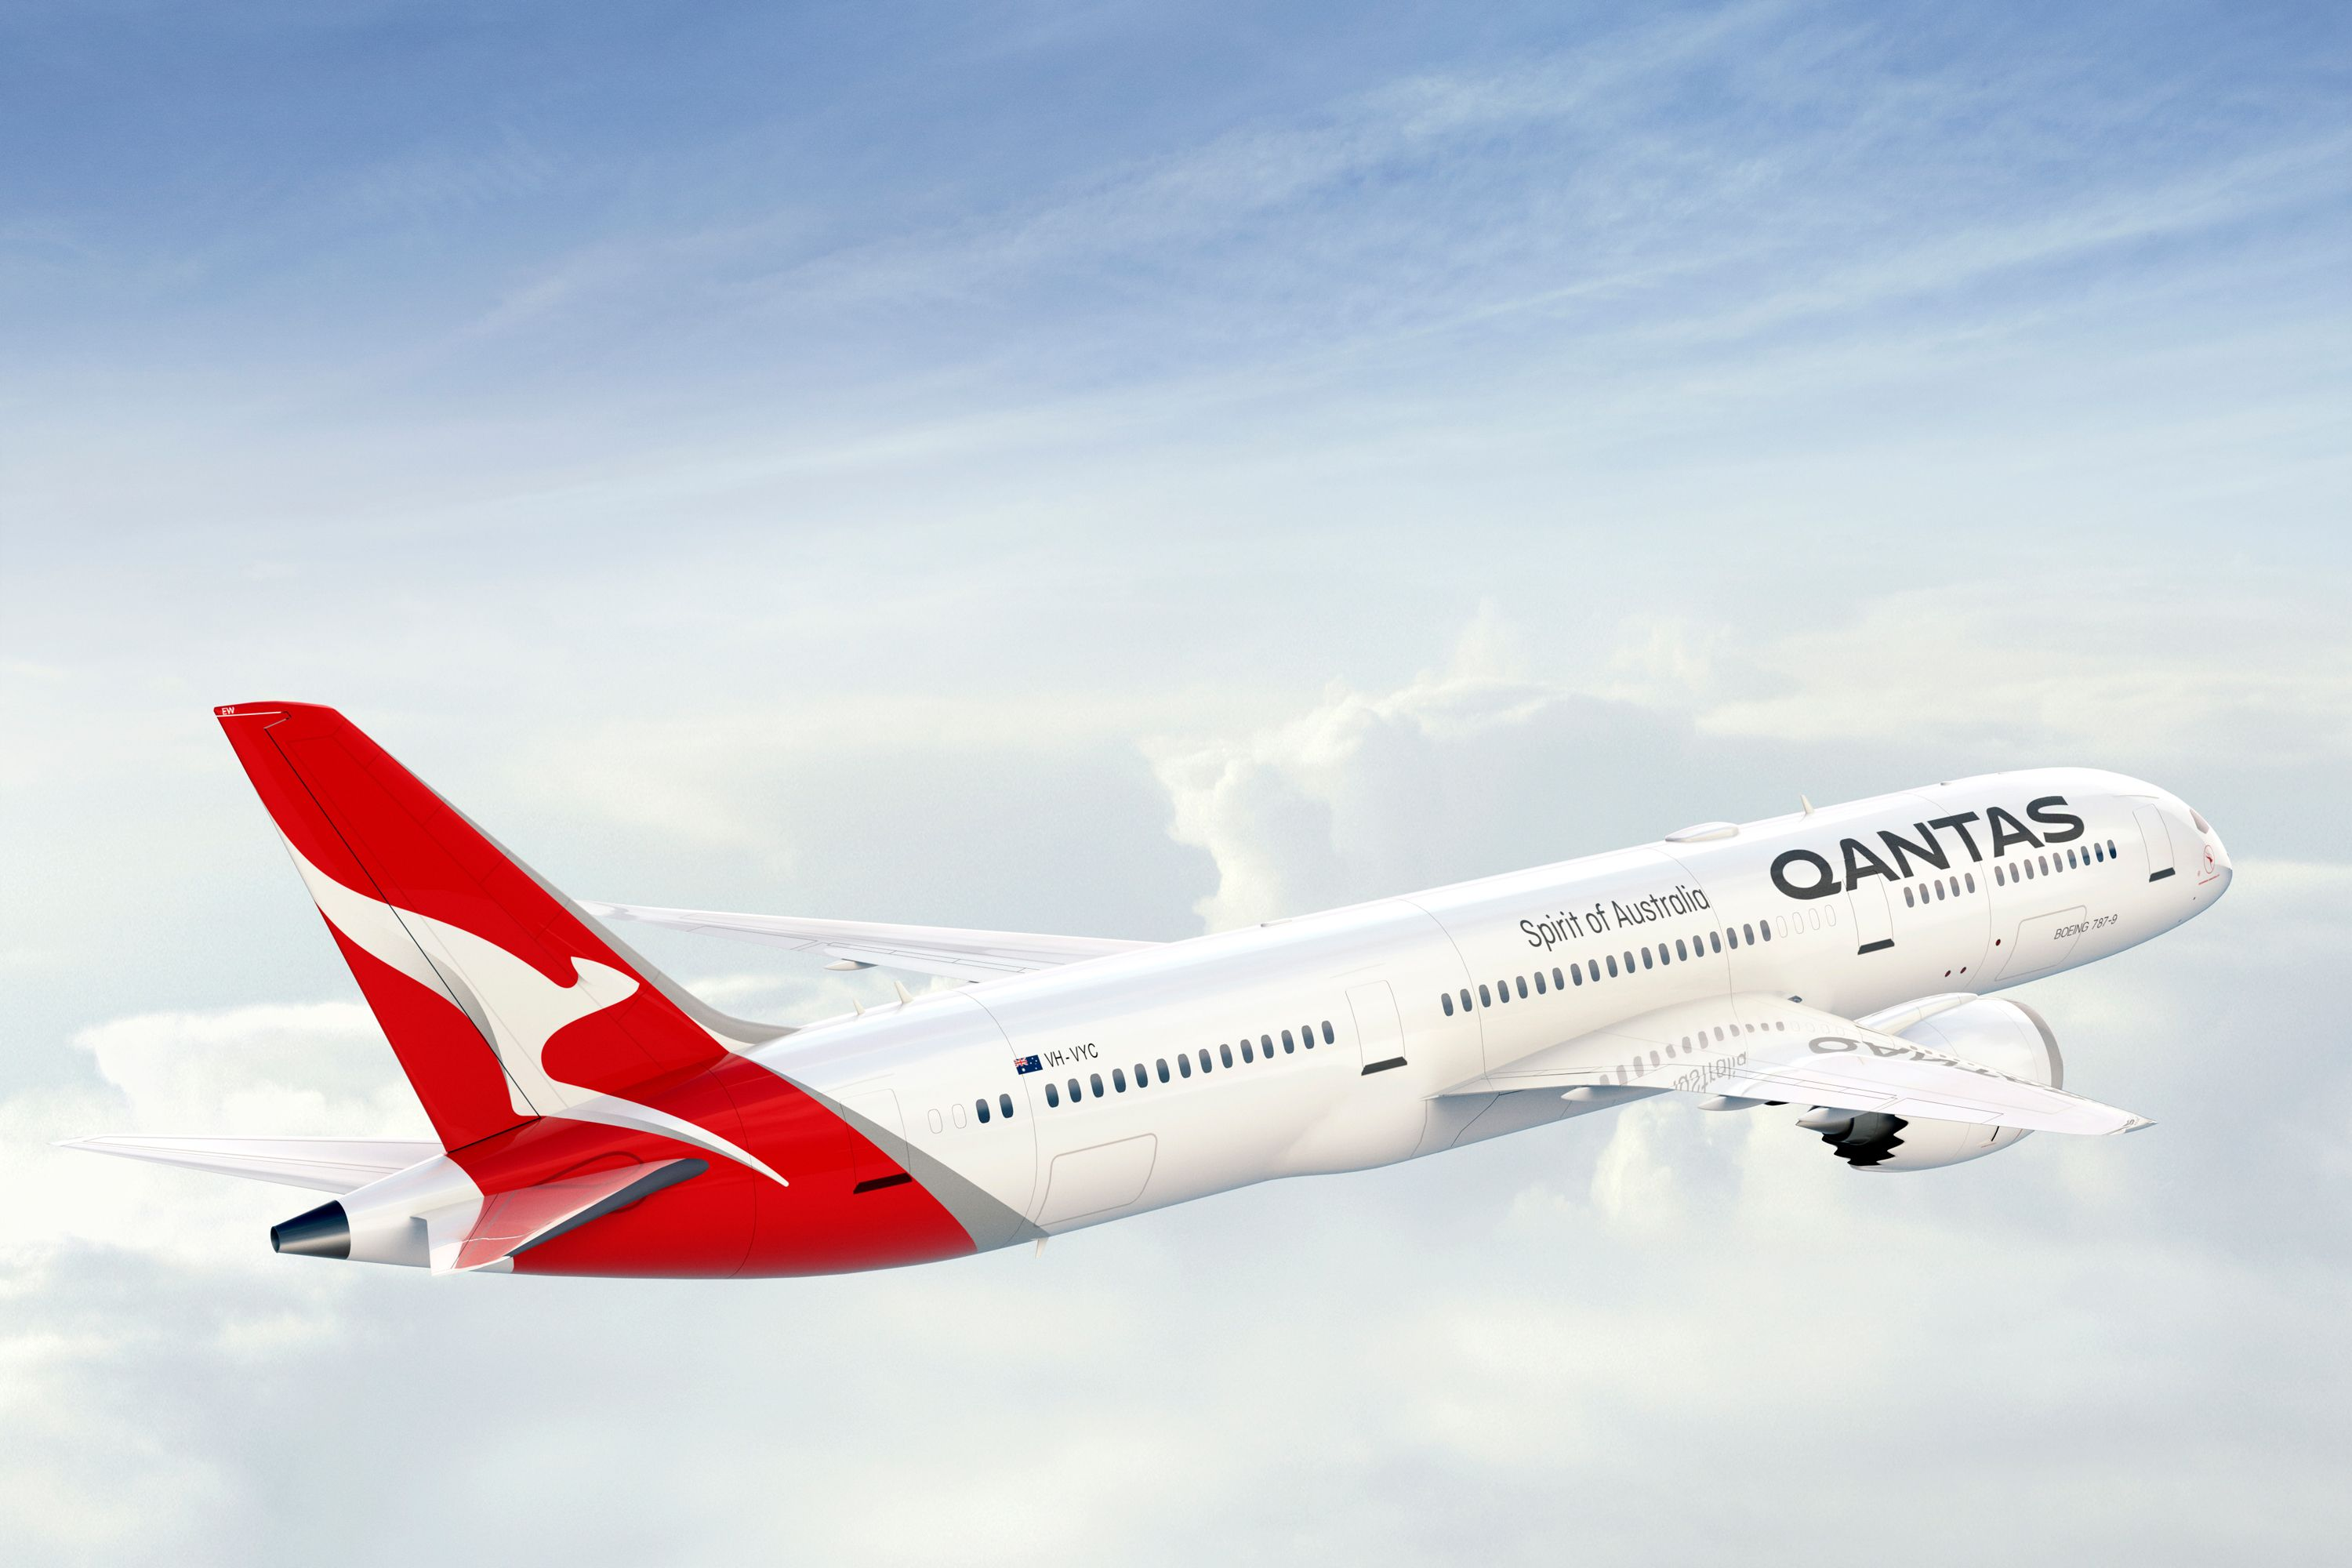 qantas houston group boeing 787 identity brand identity aviation rh pinterest com